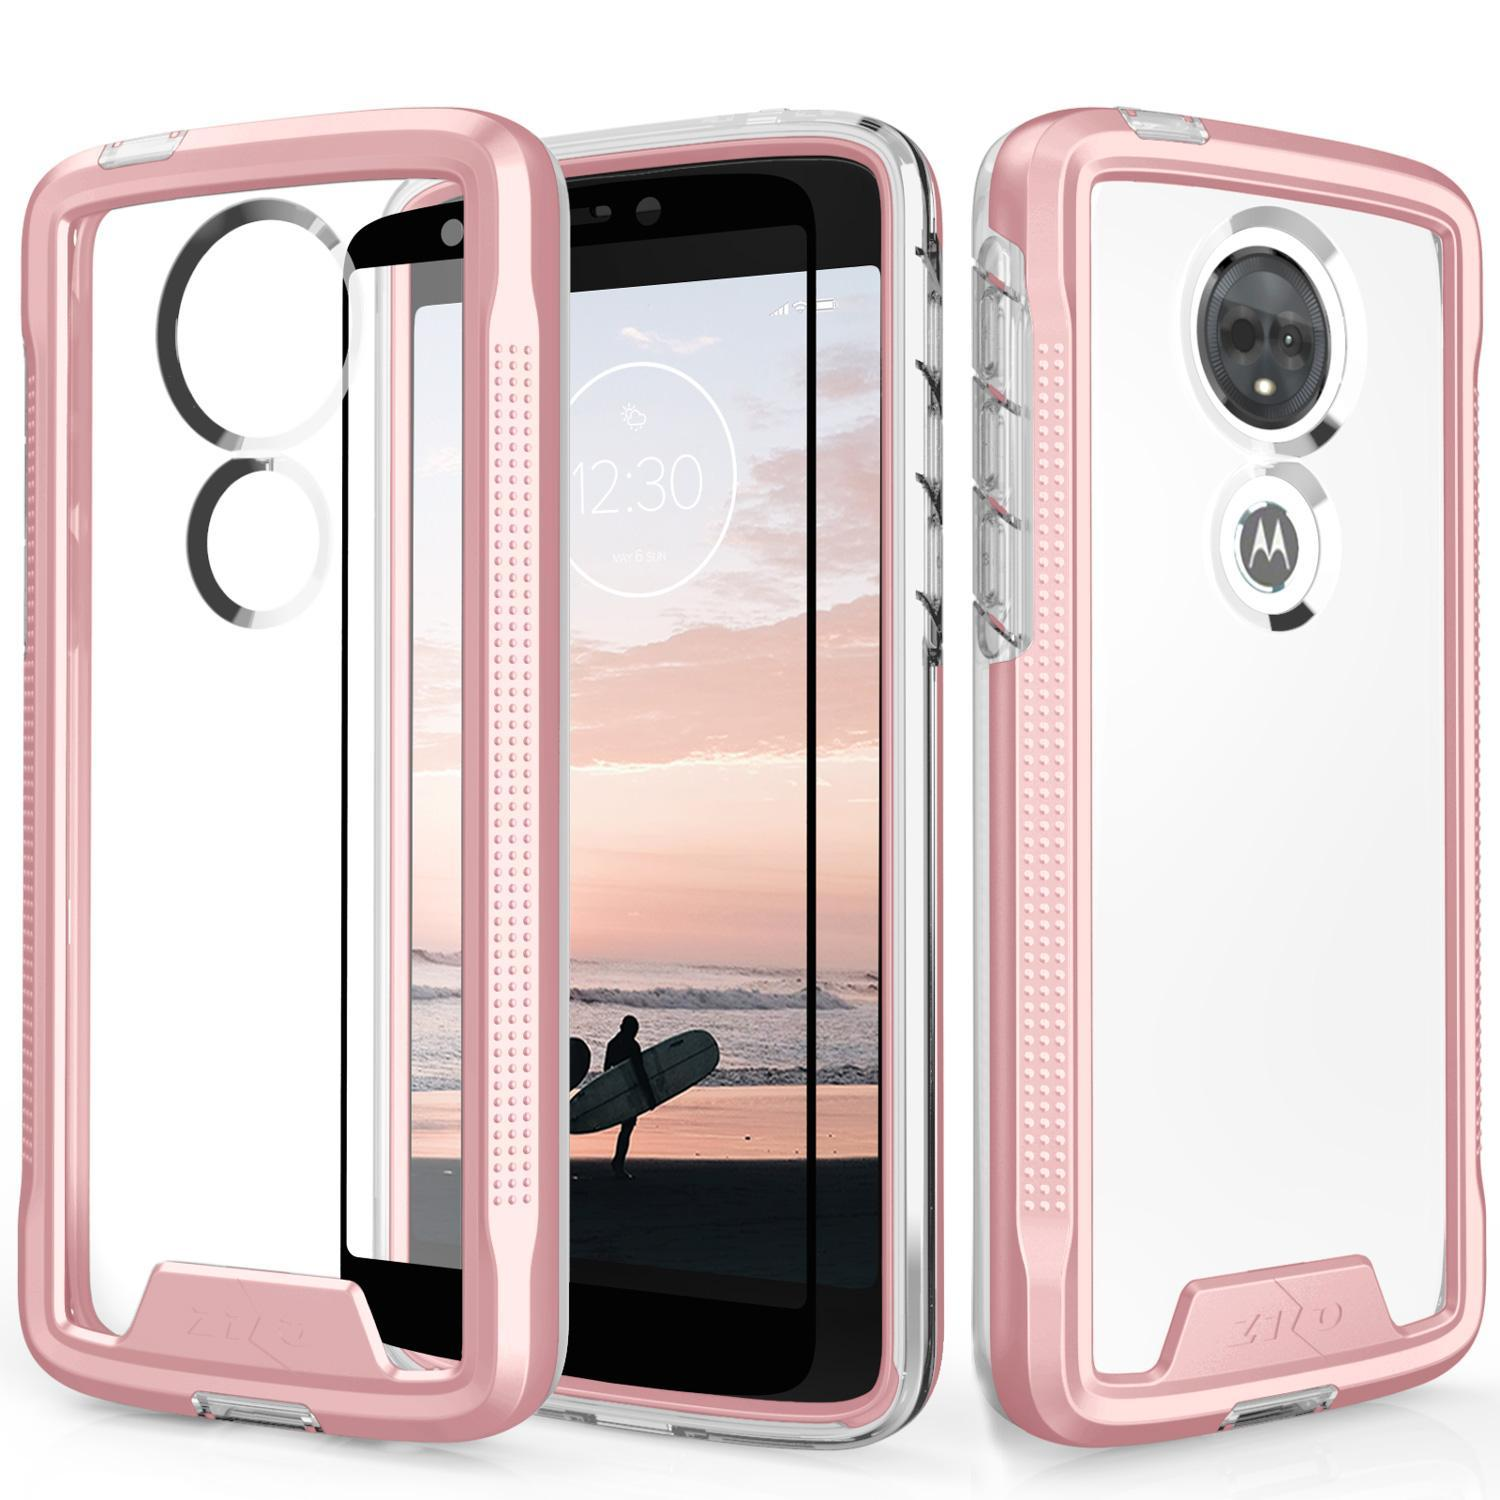 MOTO E5 SUPRA ION SERIES CASE